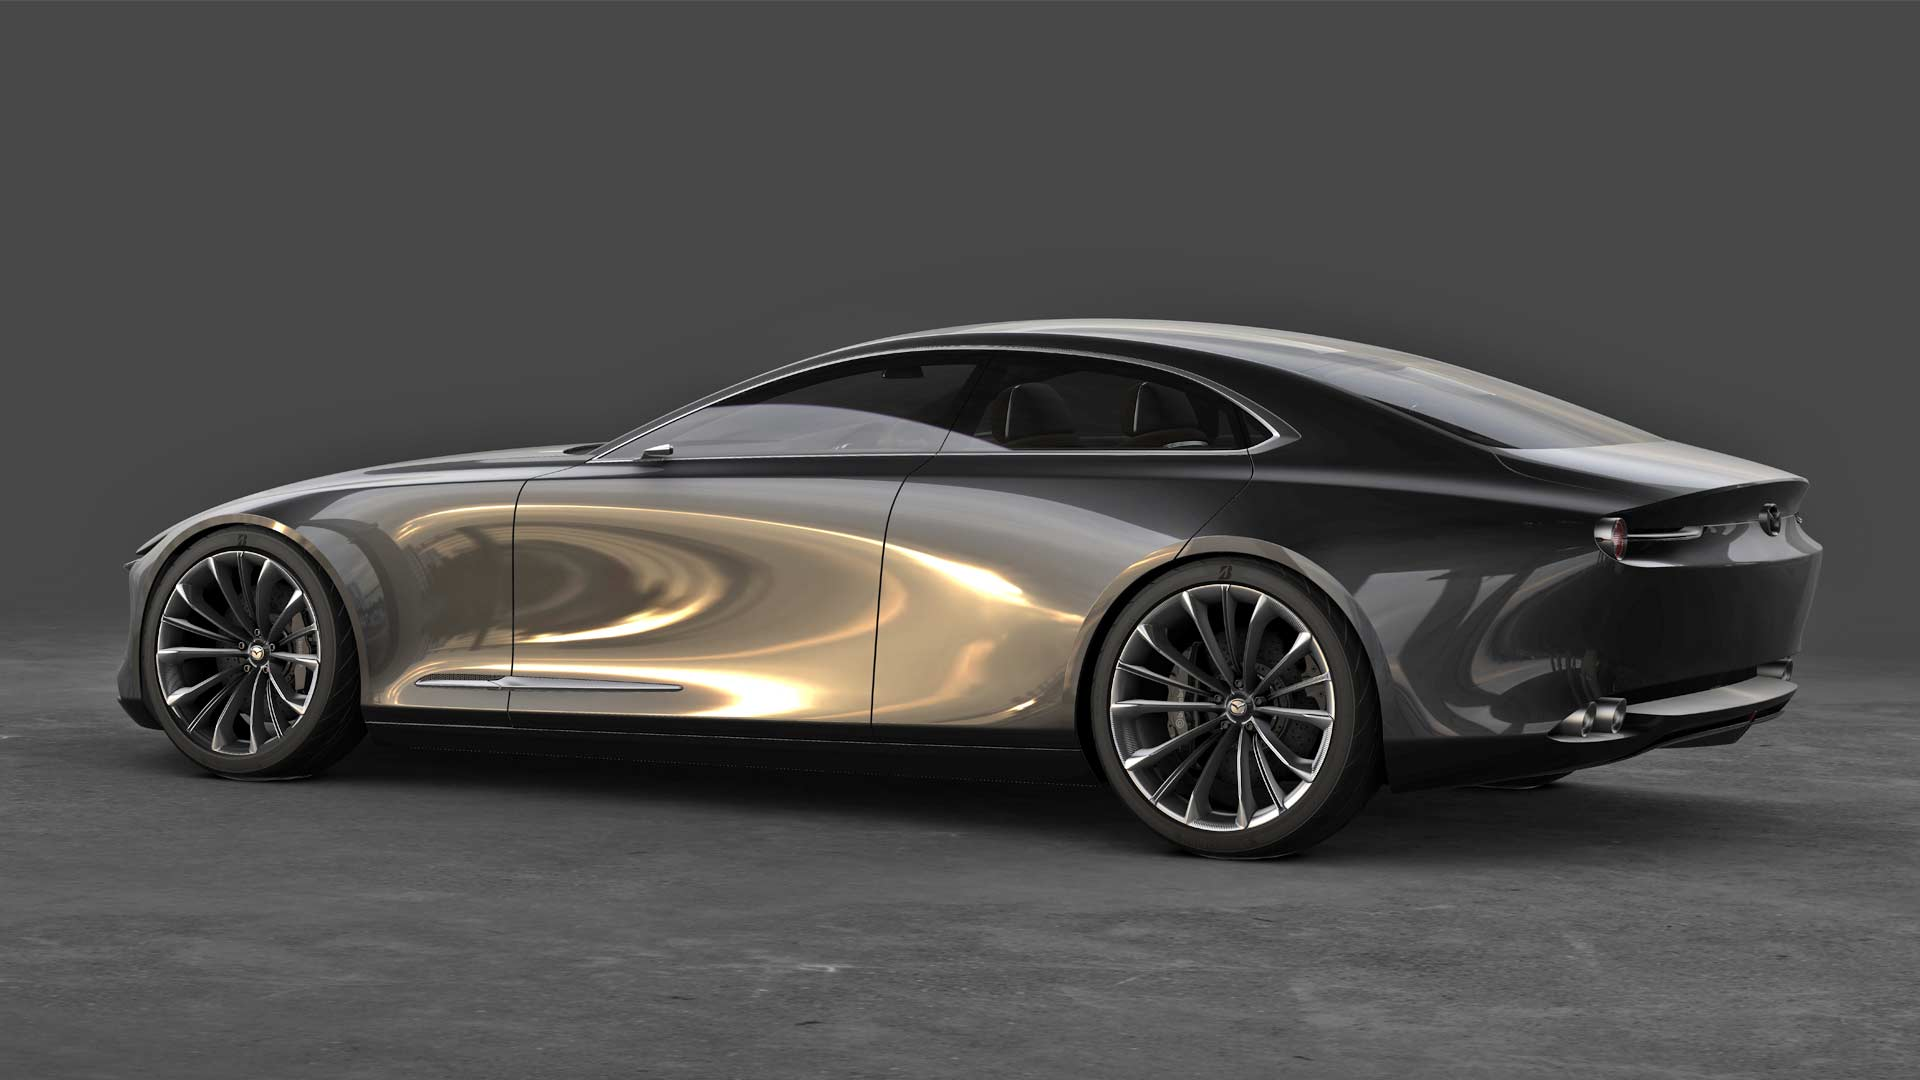 mazda vision coupe named the most beautiful concept car of the year autodevot. Black Bedroom Furniture Sets. Home Design Ideas